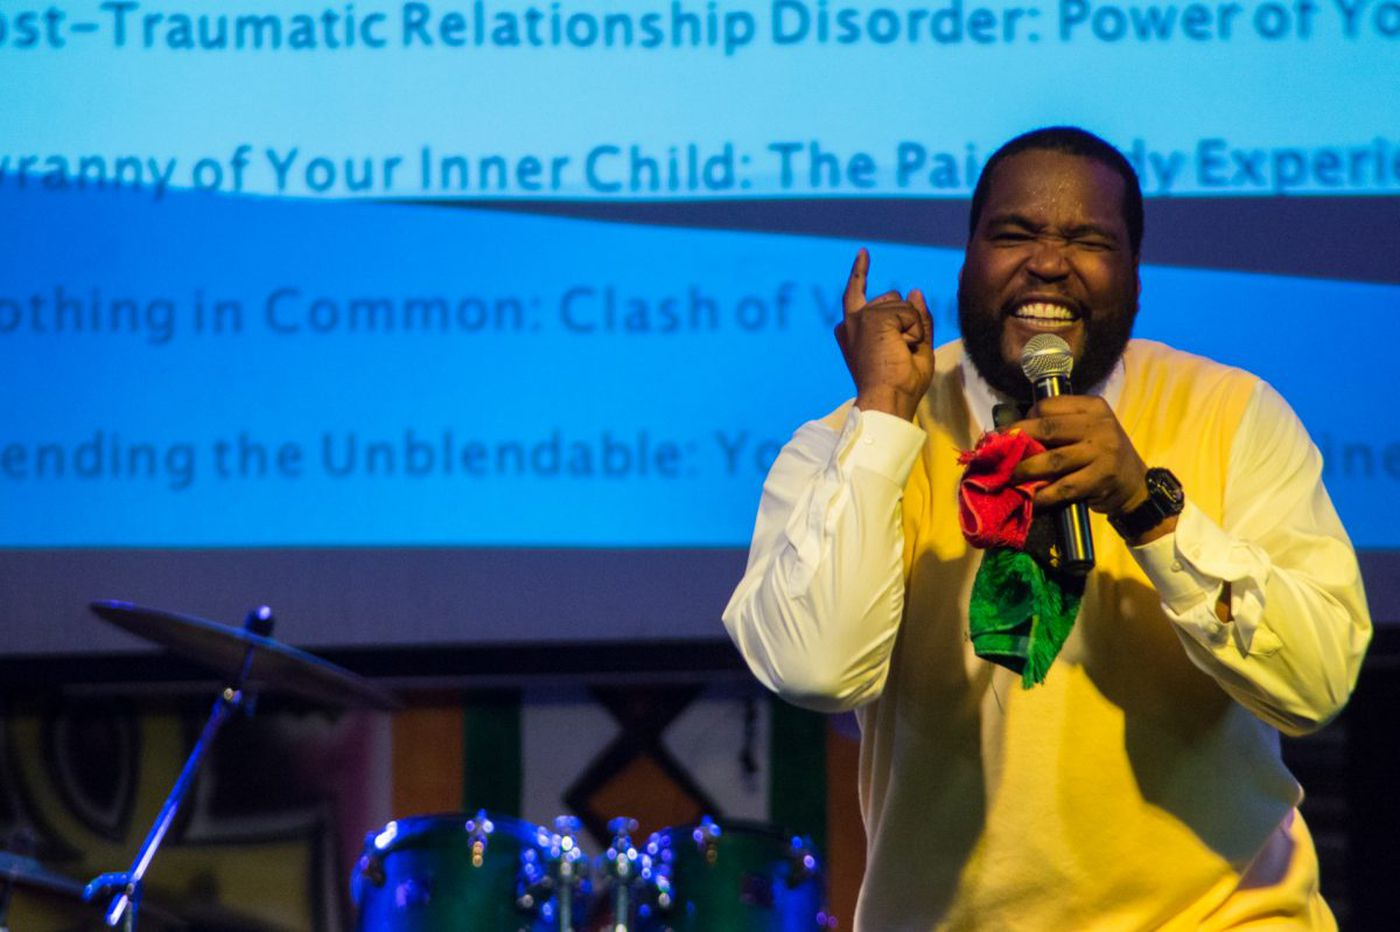 Popular speaker Umar Johnson faces fines over lack of psychology license